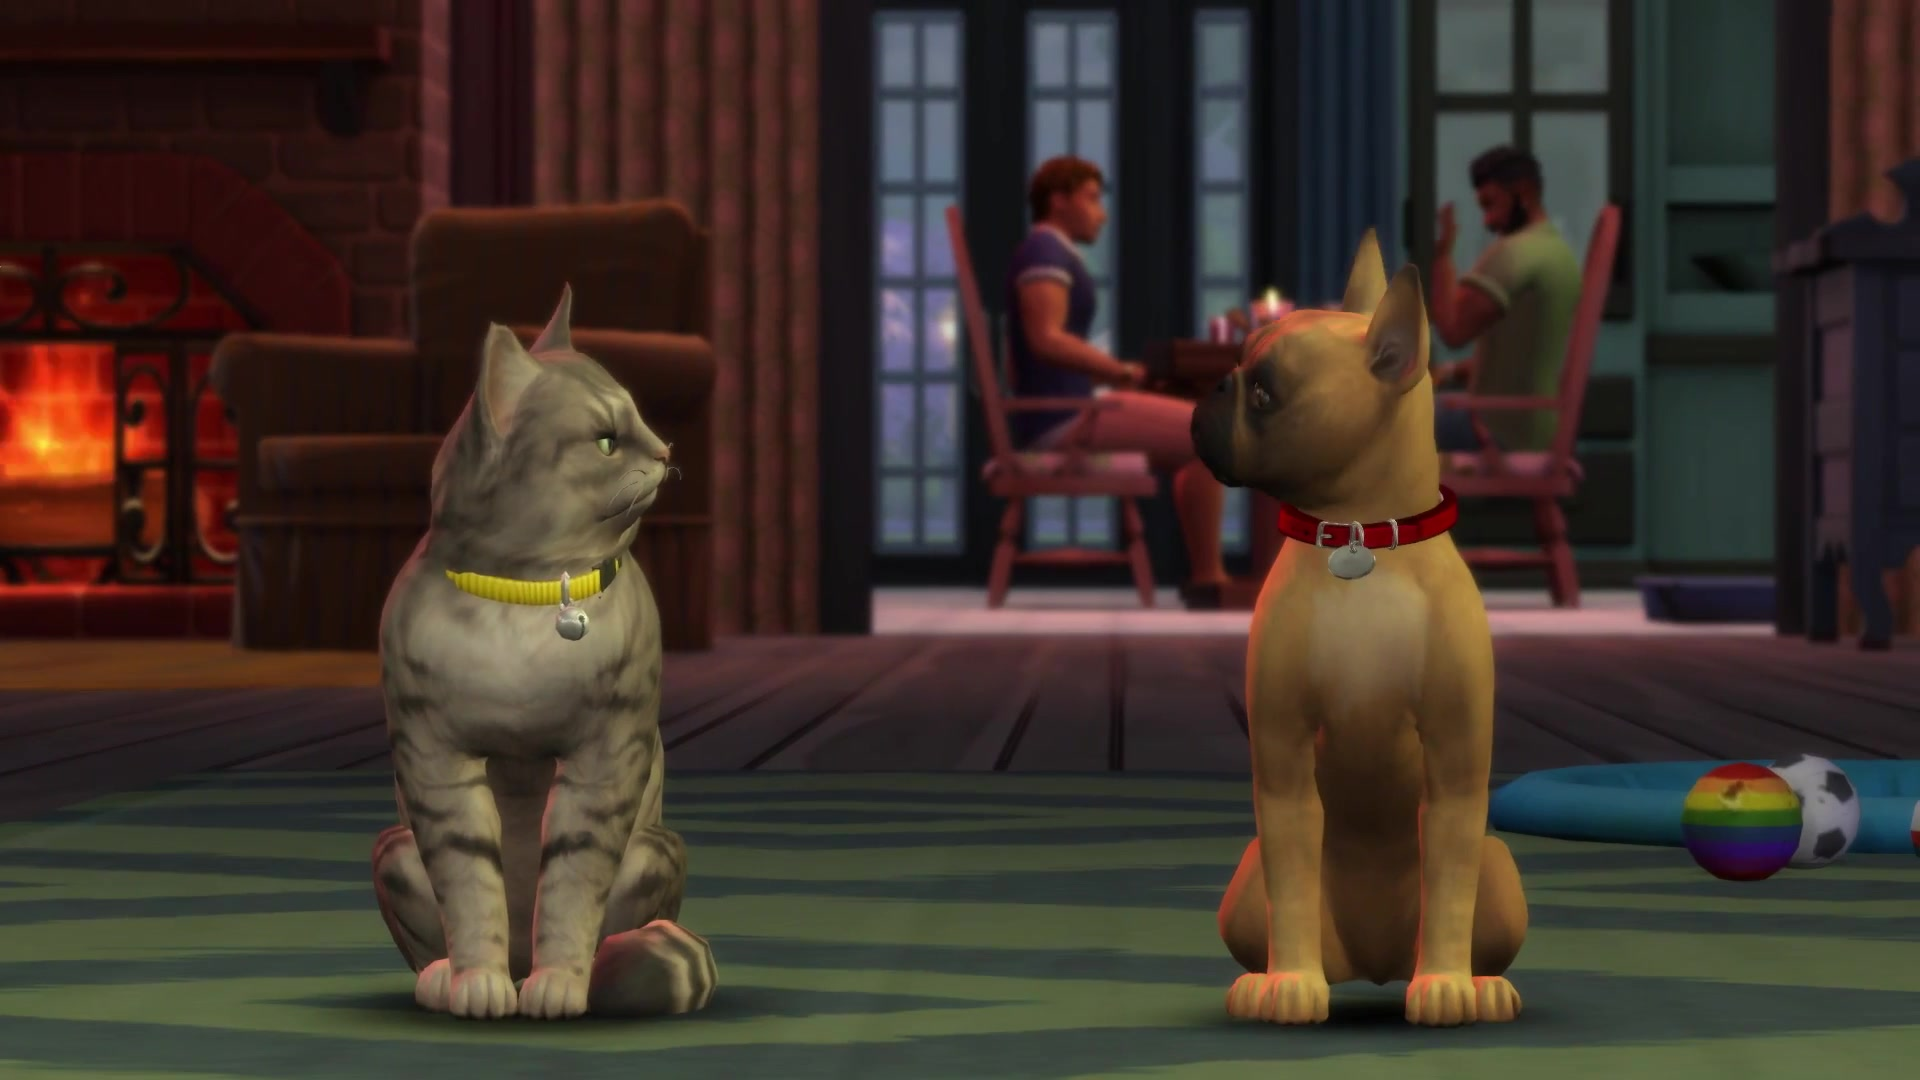 The Sims 4 Cats & Dogs (PC) Review – STG